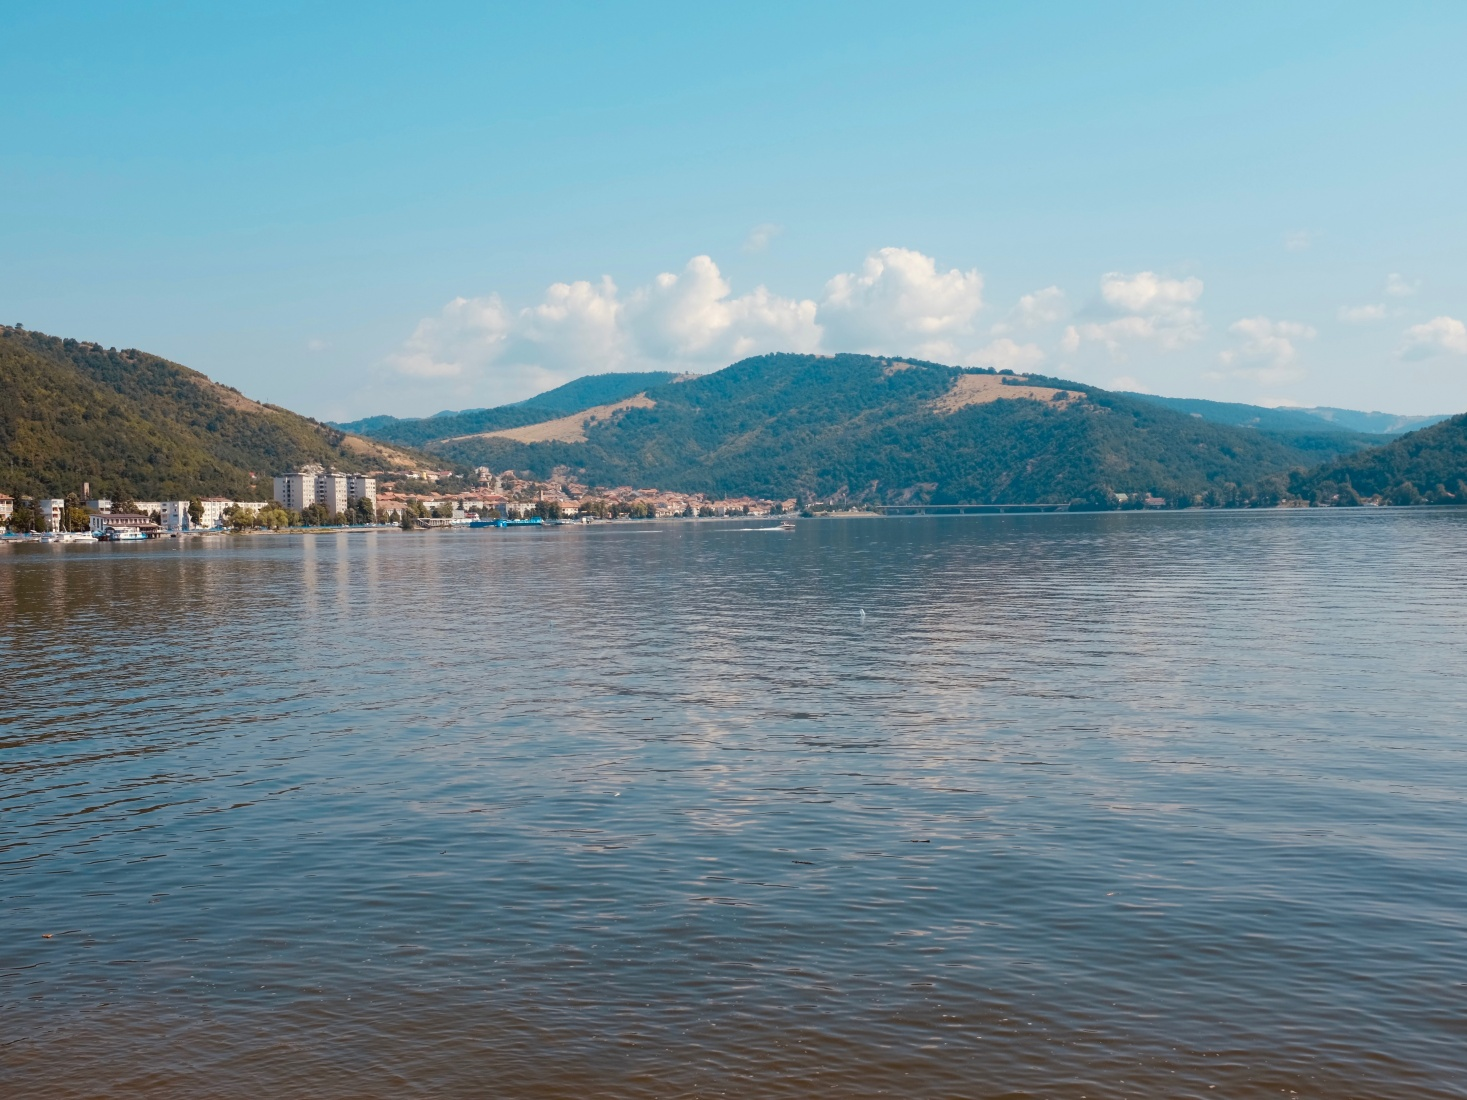 A photo of the Danube in the Romanian port of Orșova, on one of the most dramatic stretches of the river called the